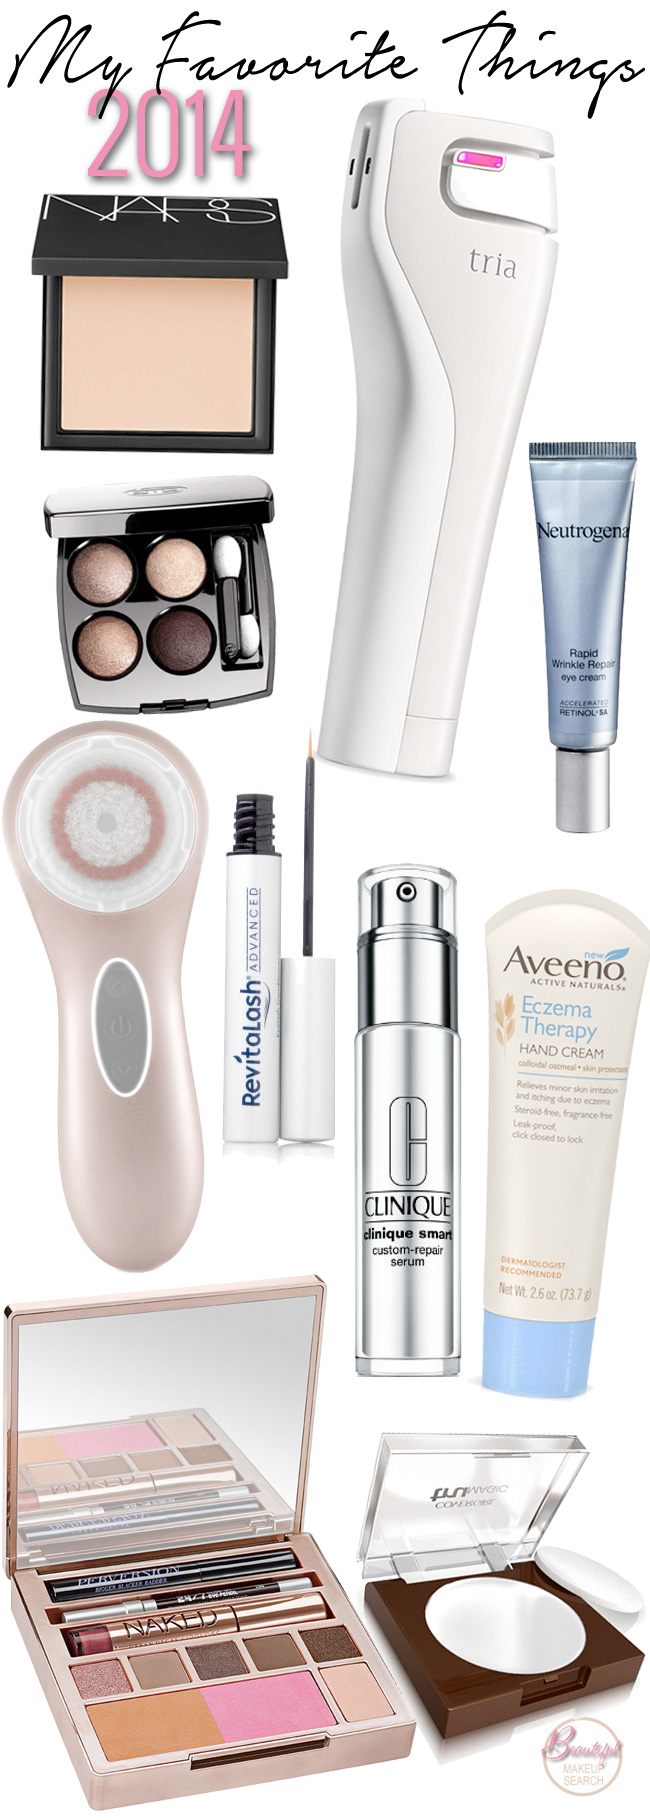 Top 10 Best Beauty Items of 2014